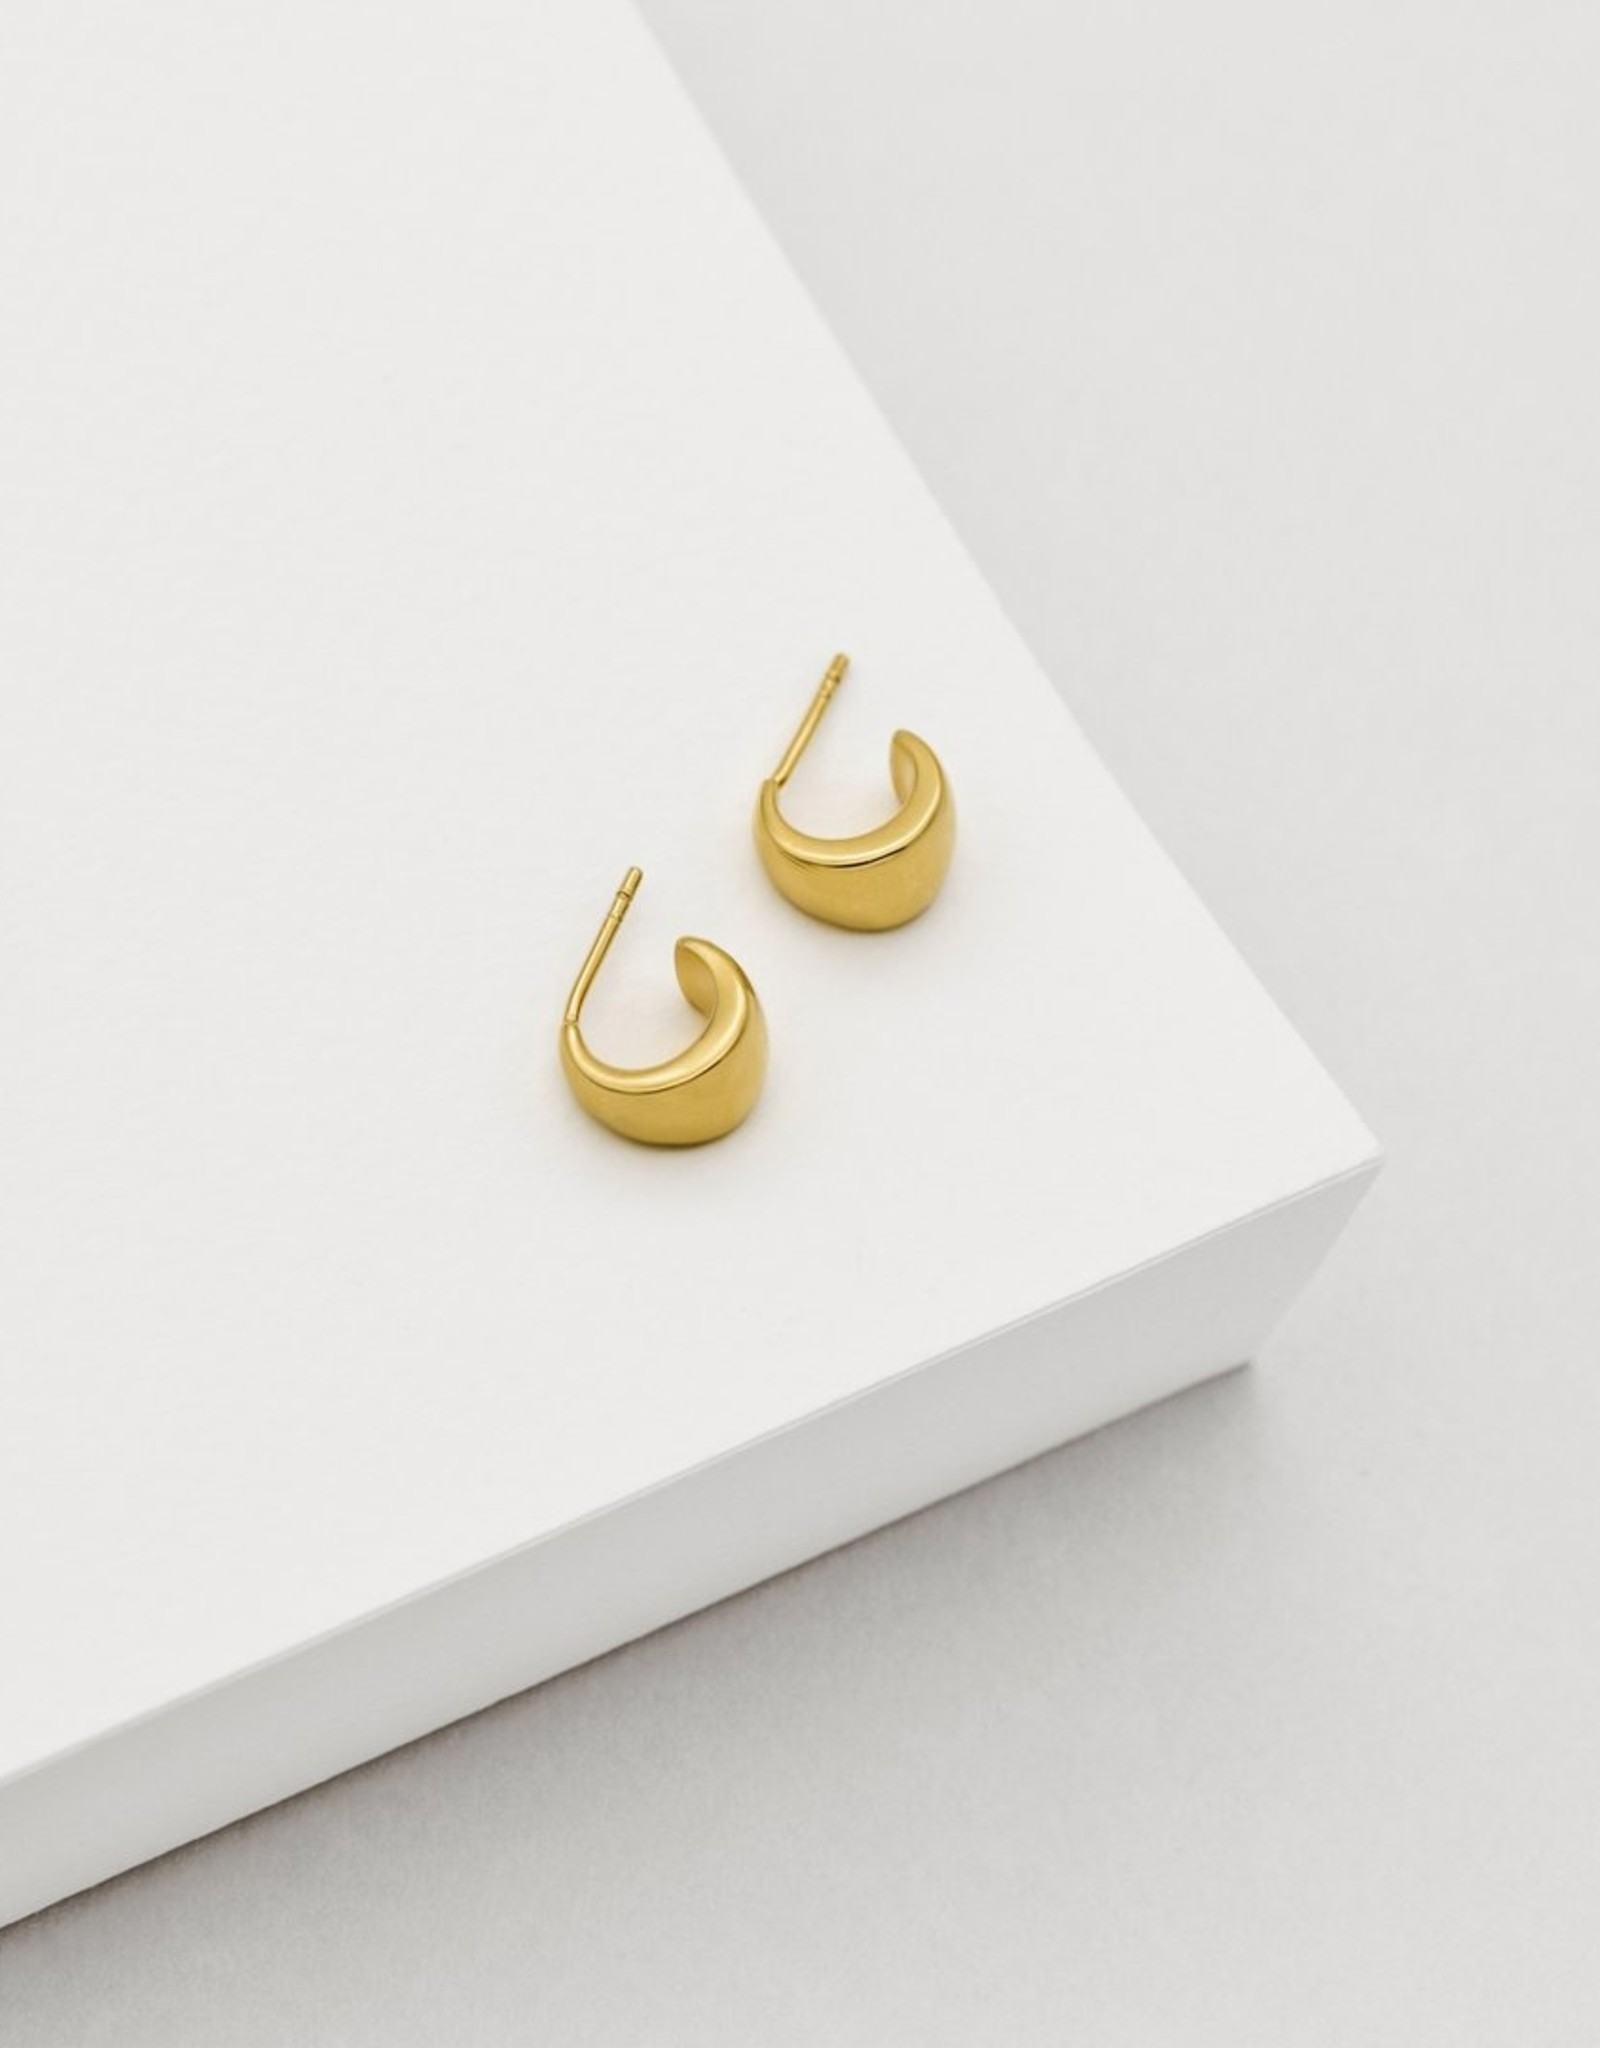 Elizabeth Hoop Earrings - Gold Plated Sterling Silver